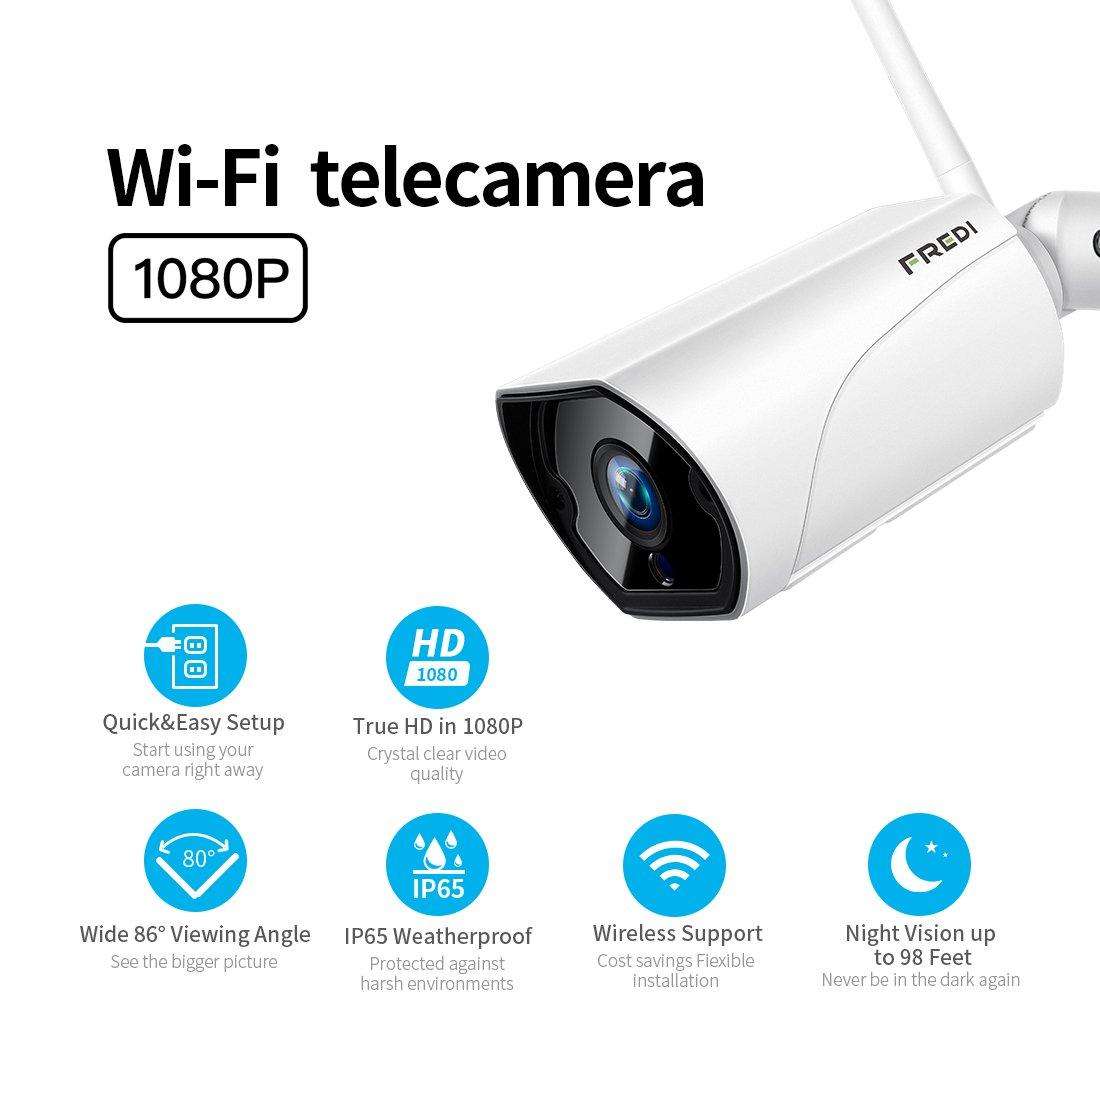 Video Surveillance Strong-Willed Heanworld 1080p Hd Outdoor Bullet Ip Camera Waterproof Cctv Security Camera Support P2p Onvif Mobile Phone View Day And Night Fine Quality Surveillance Cameras